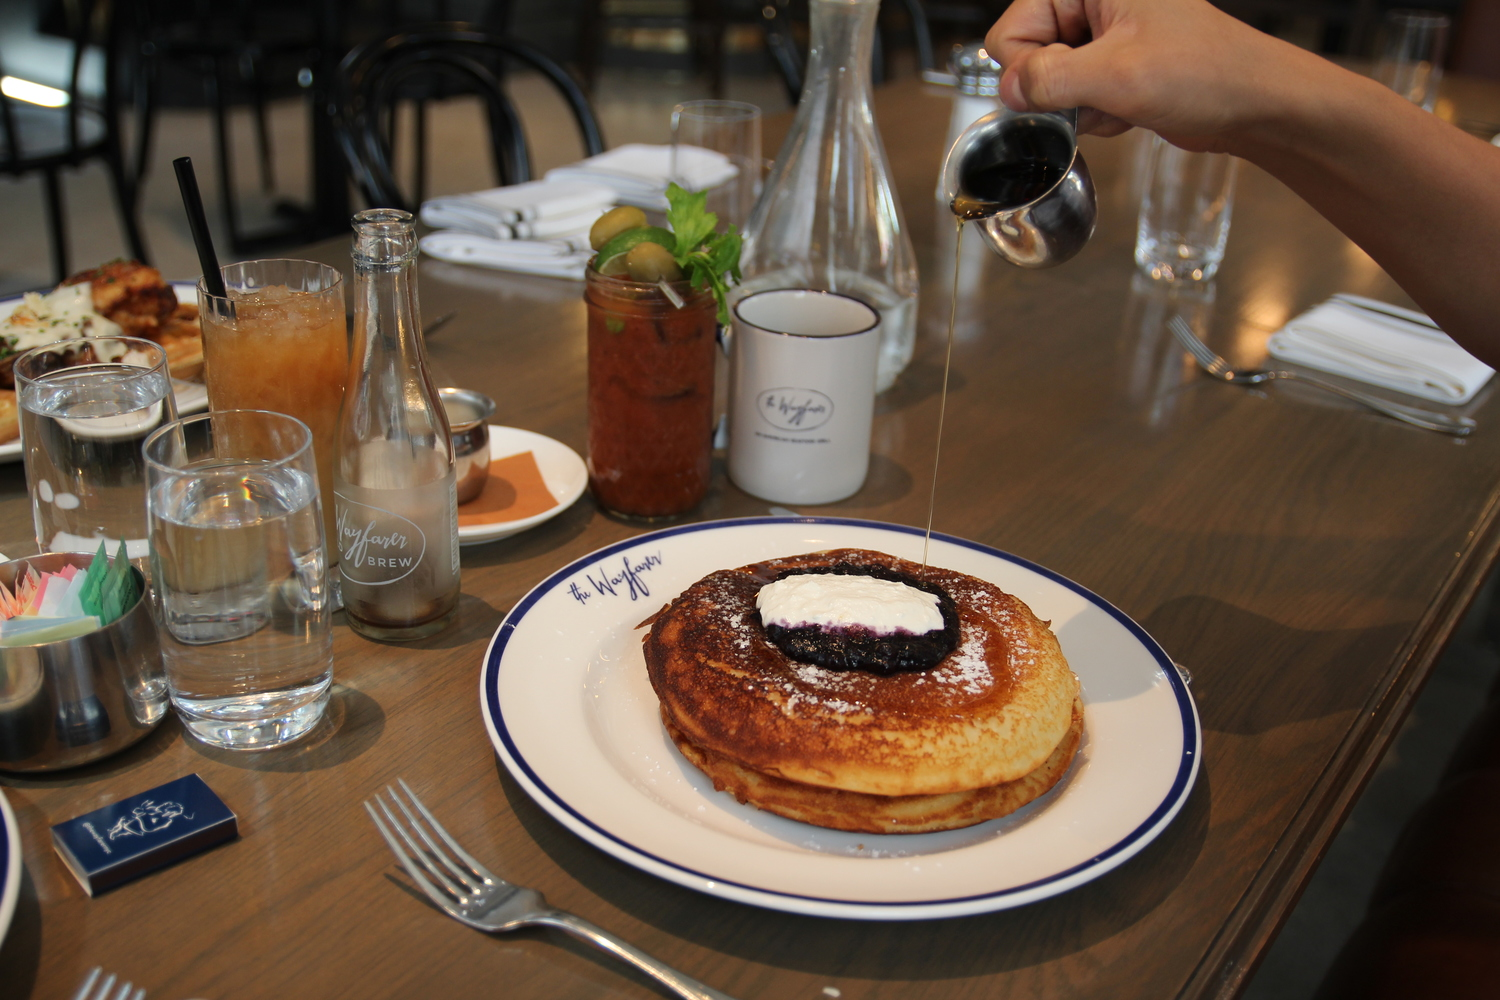 buttermilk pancakes with blueberries and ricotta